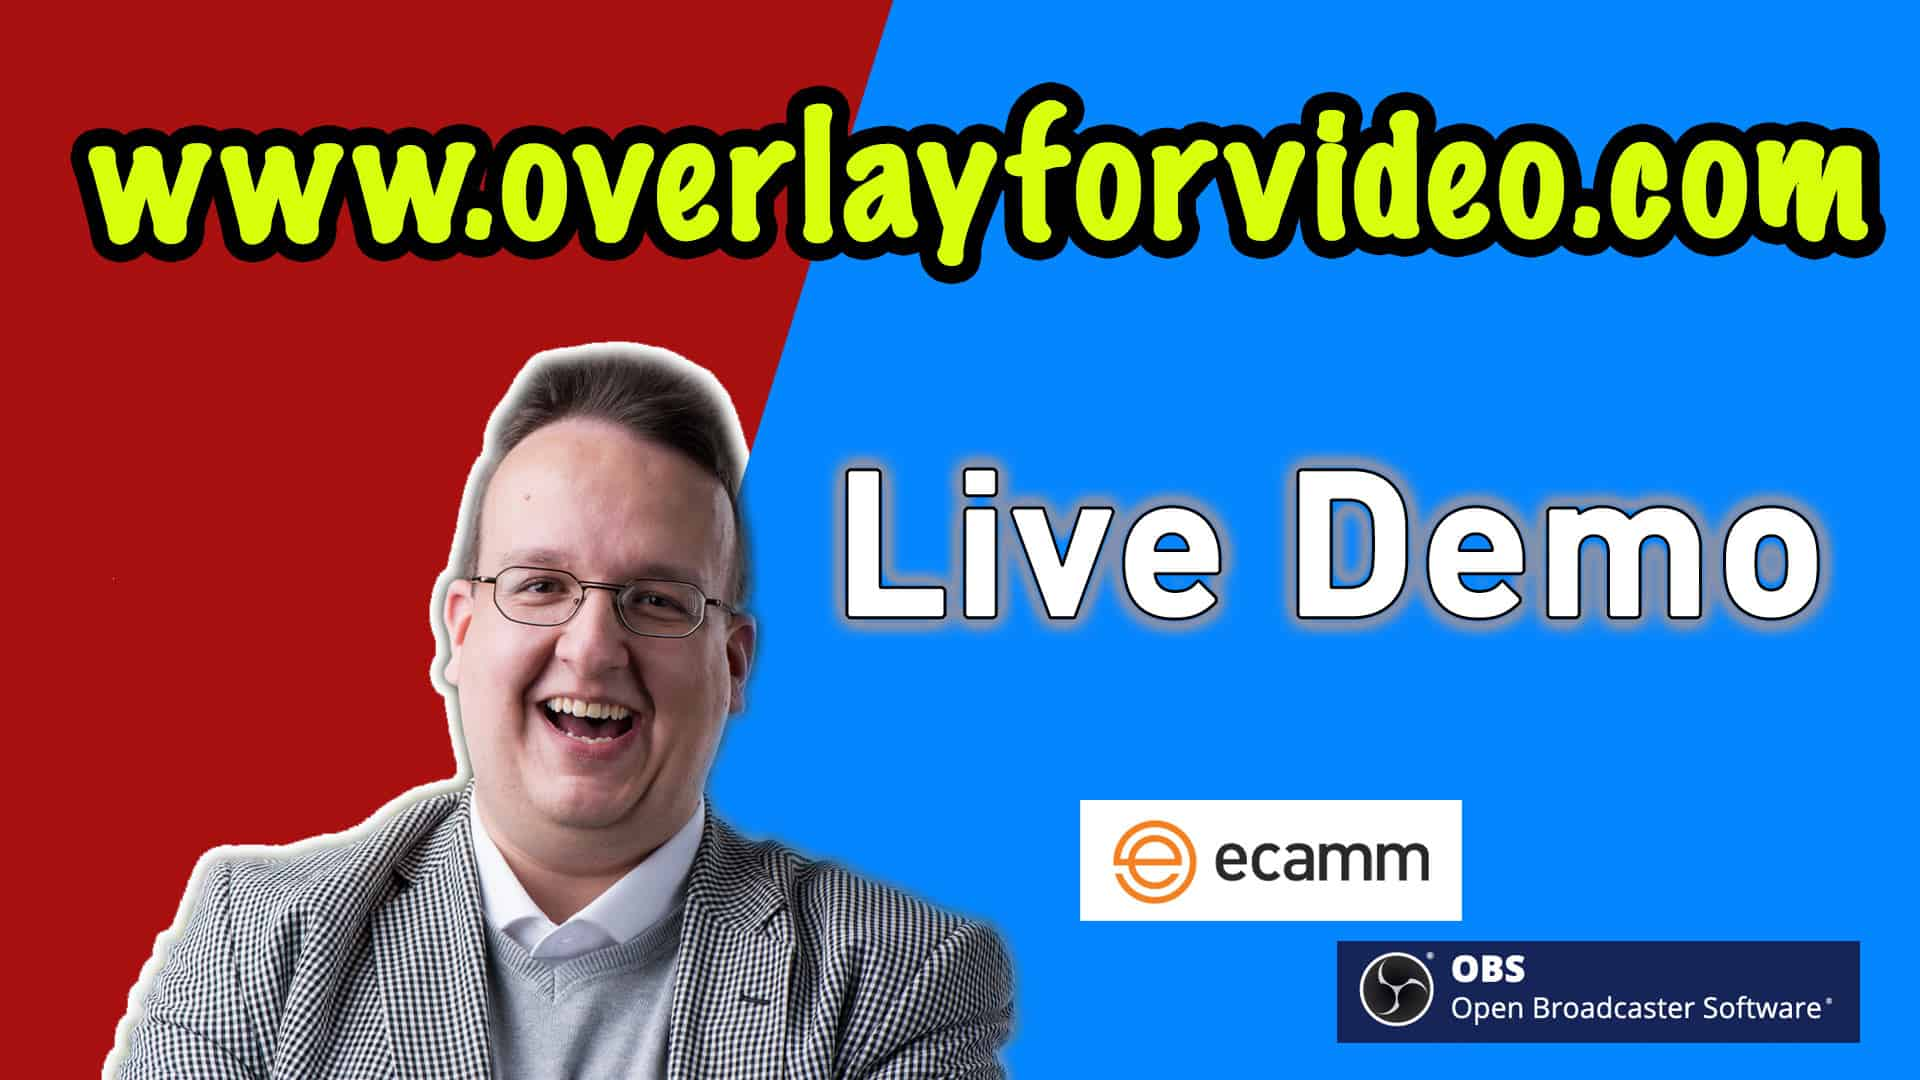 overlayforvideo live demo - Home